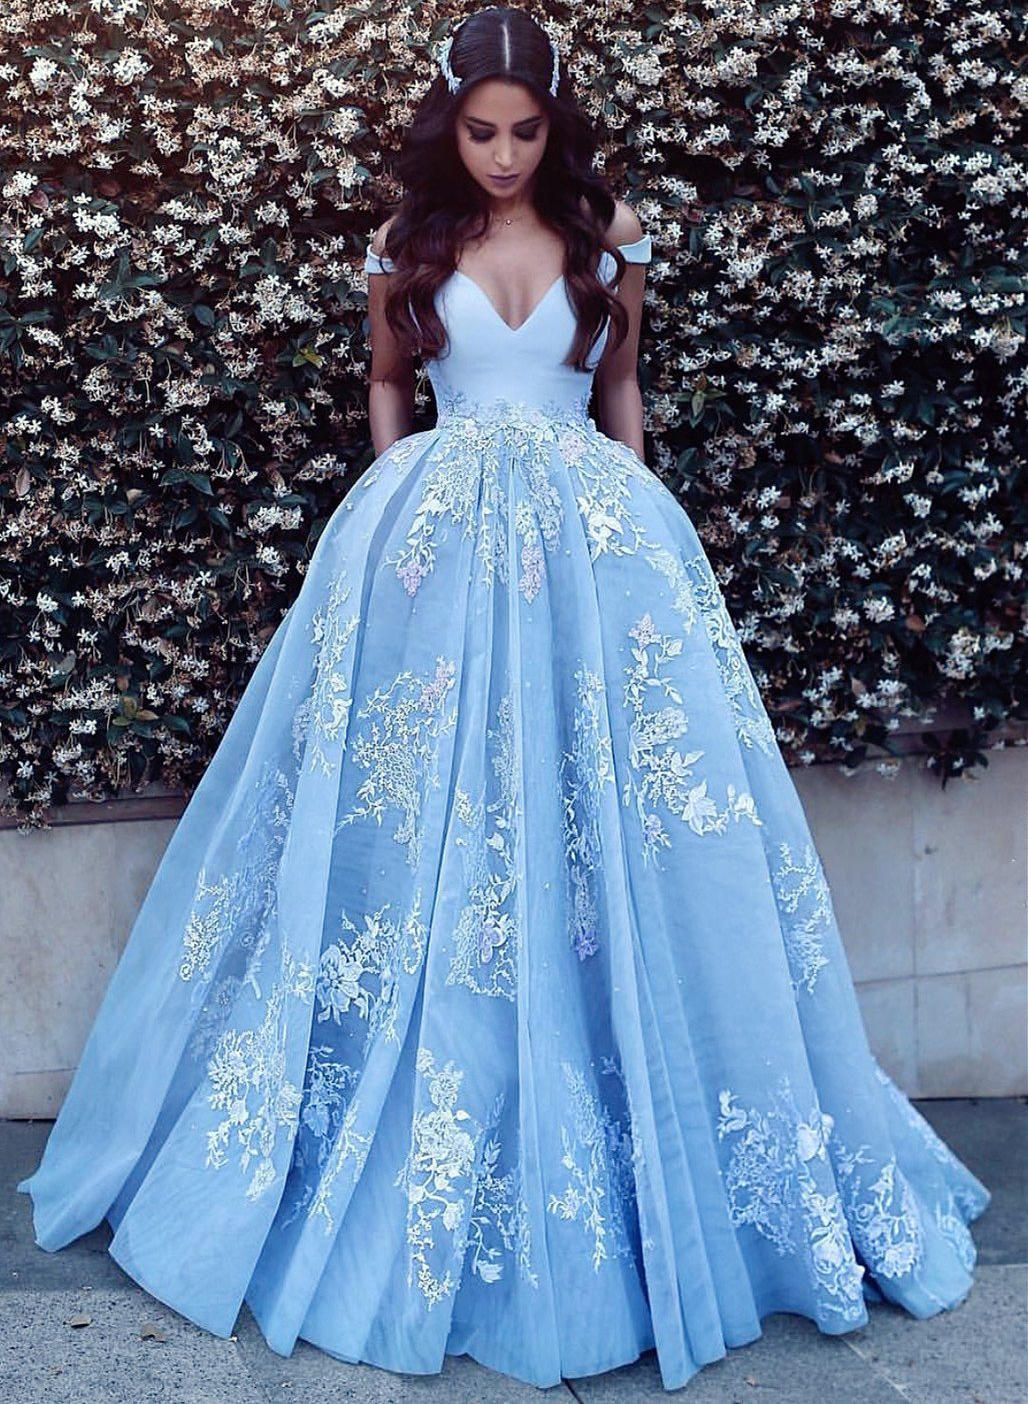 5c60929a434c4 Ball-Gown Off-the-Shoulder Sweep Train Prom Dresses With Appliques  (018148398. Loading zoom